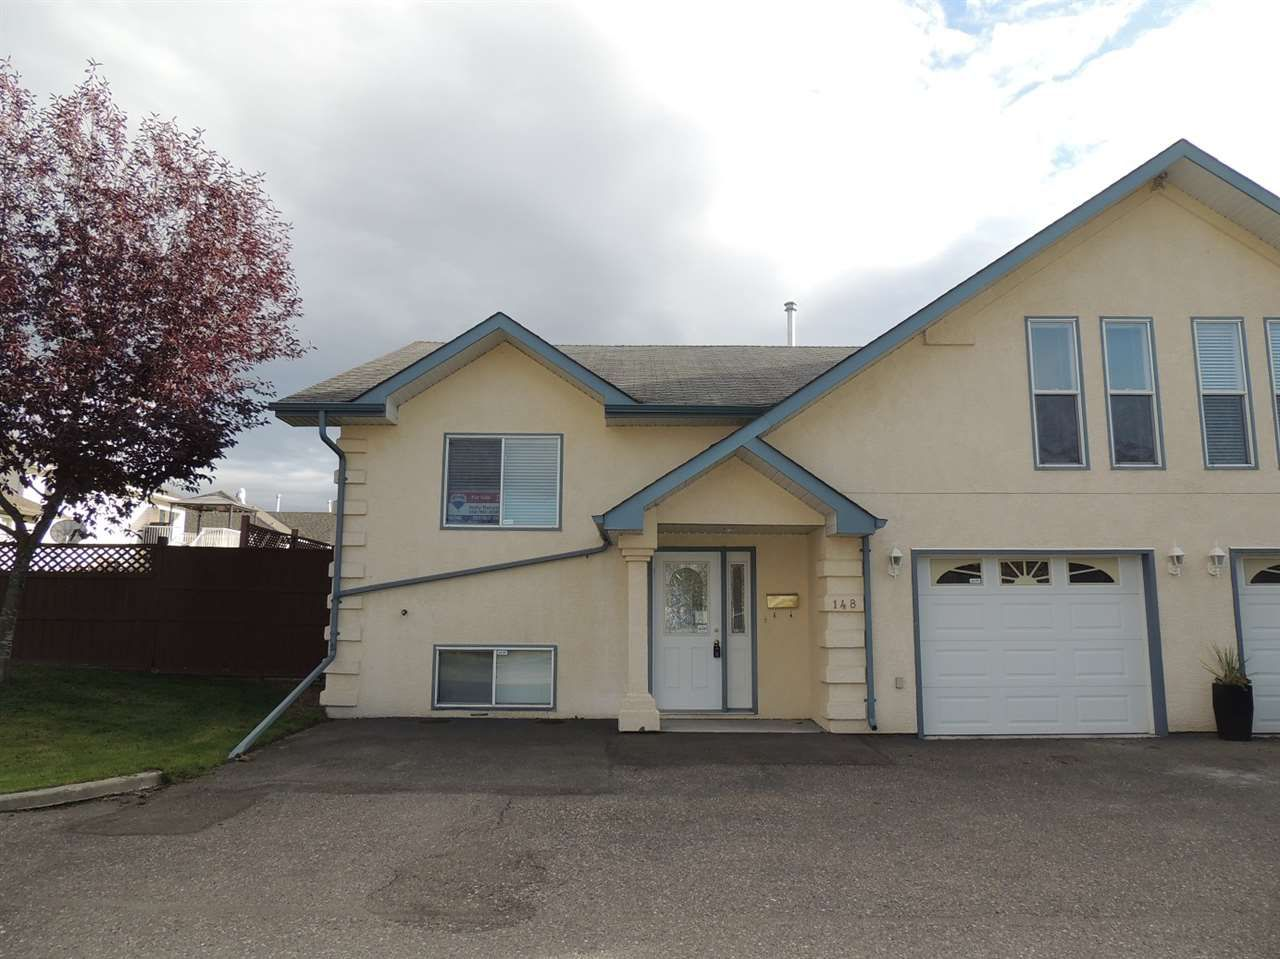 Main Photo: 148 6807 WESTGATE Avenue in Prince George: Lafreniere Townhouse for sale (PG City South (Zone 74))  : MLS®# R2329927